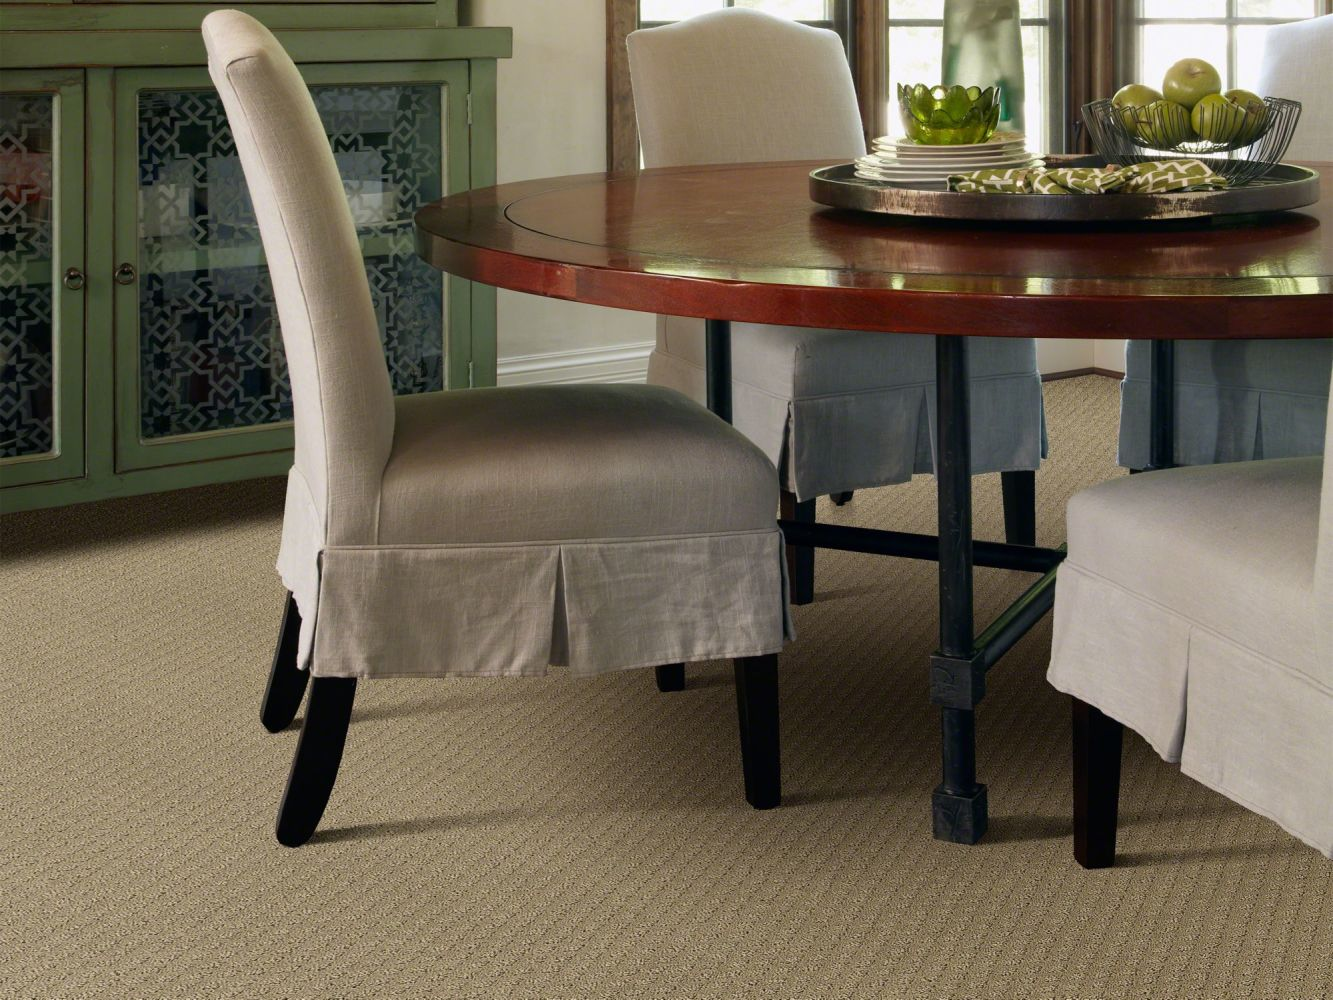 Shaw Floors Foundations Entwined With You Biscotti 00783_E9808